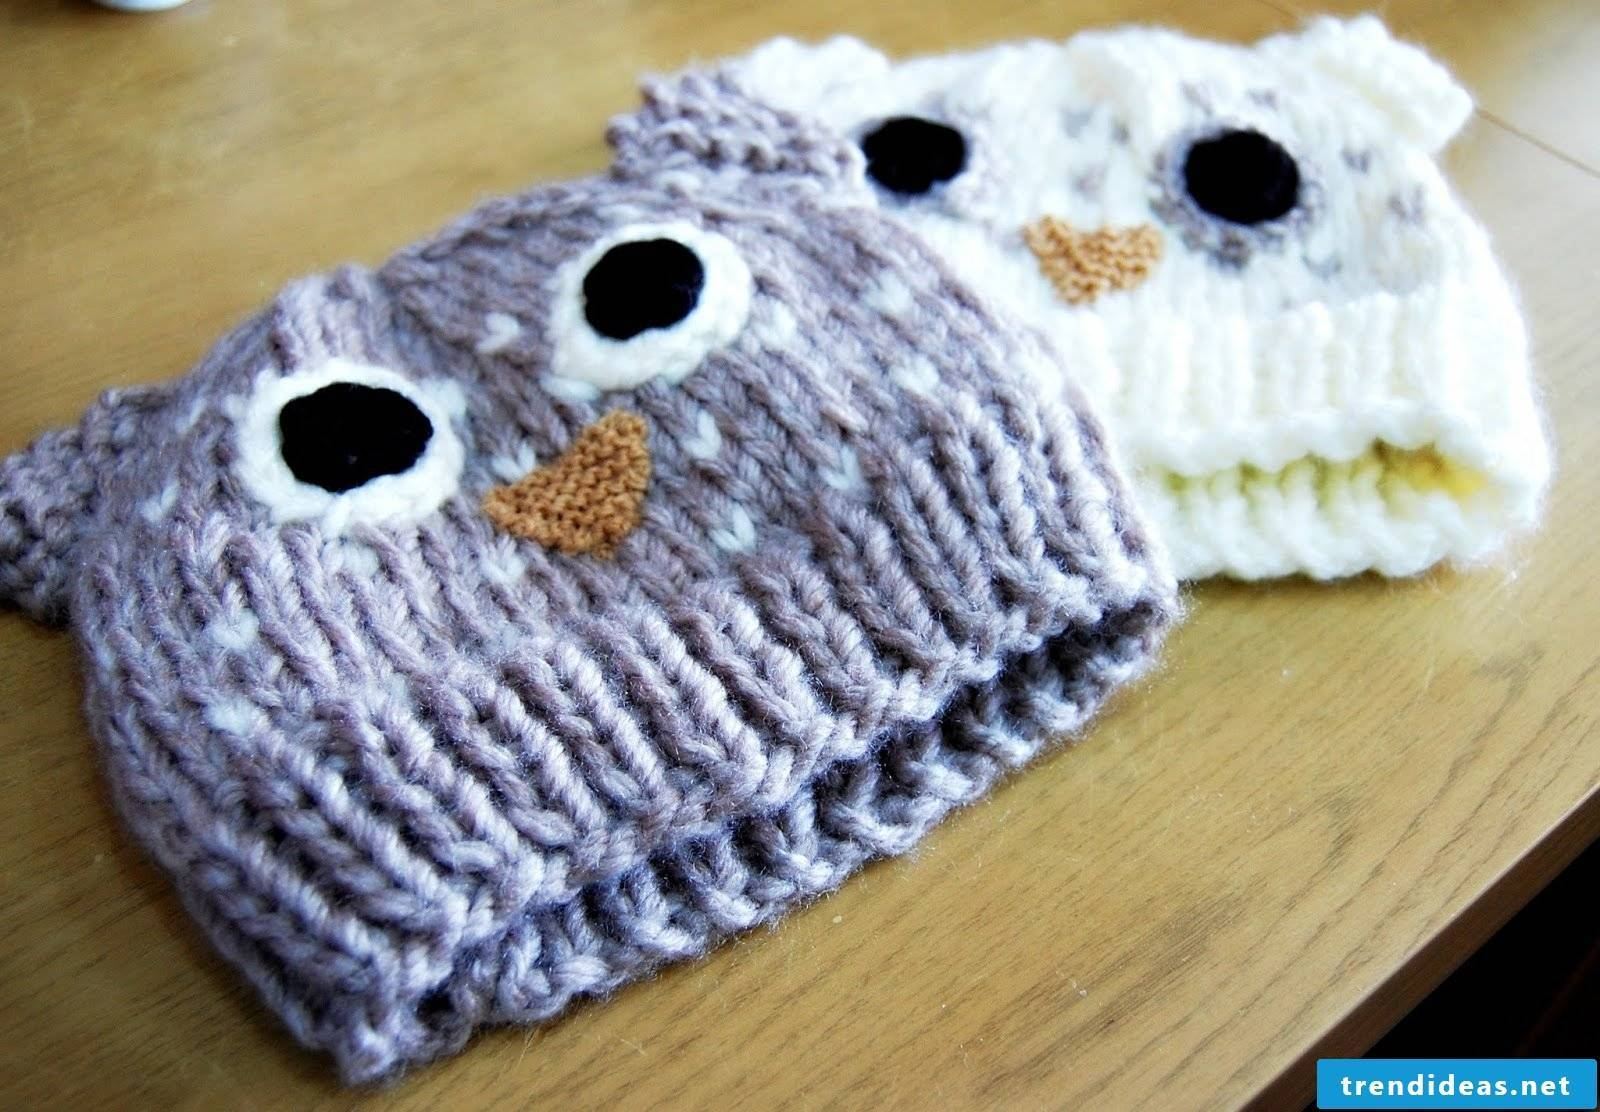 Sweet owls to knit by yourself